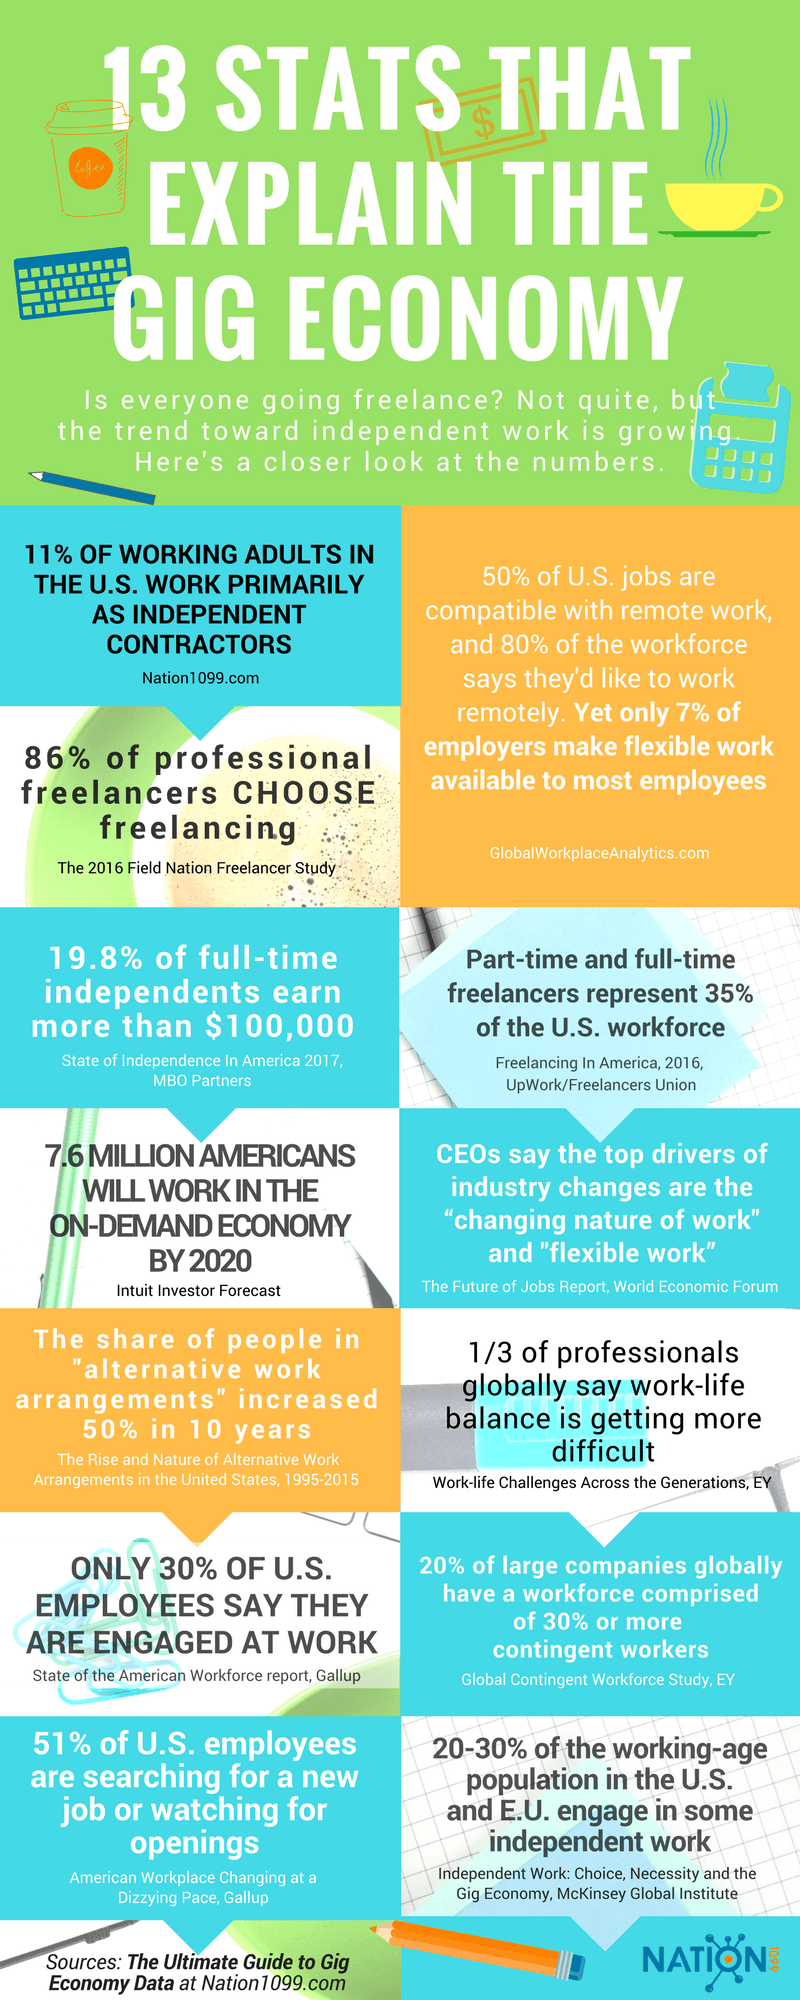 Gig Economy infographic - 13 Stats That Explain the Gig Economy